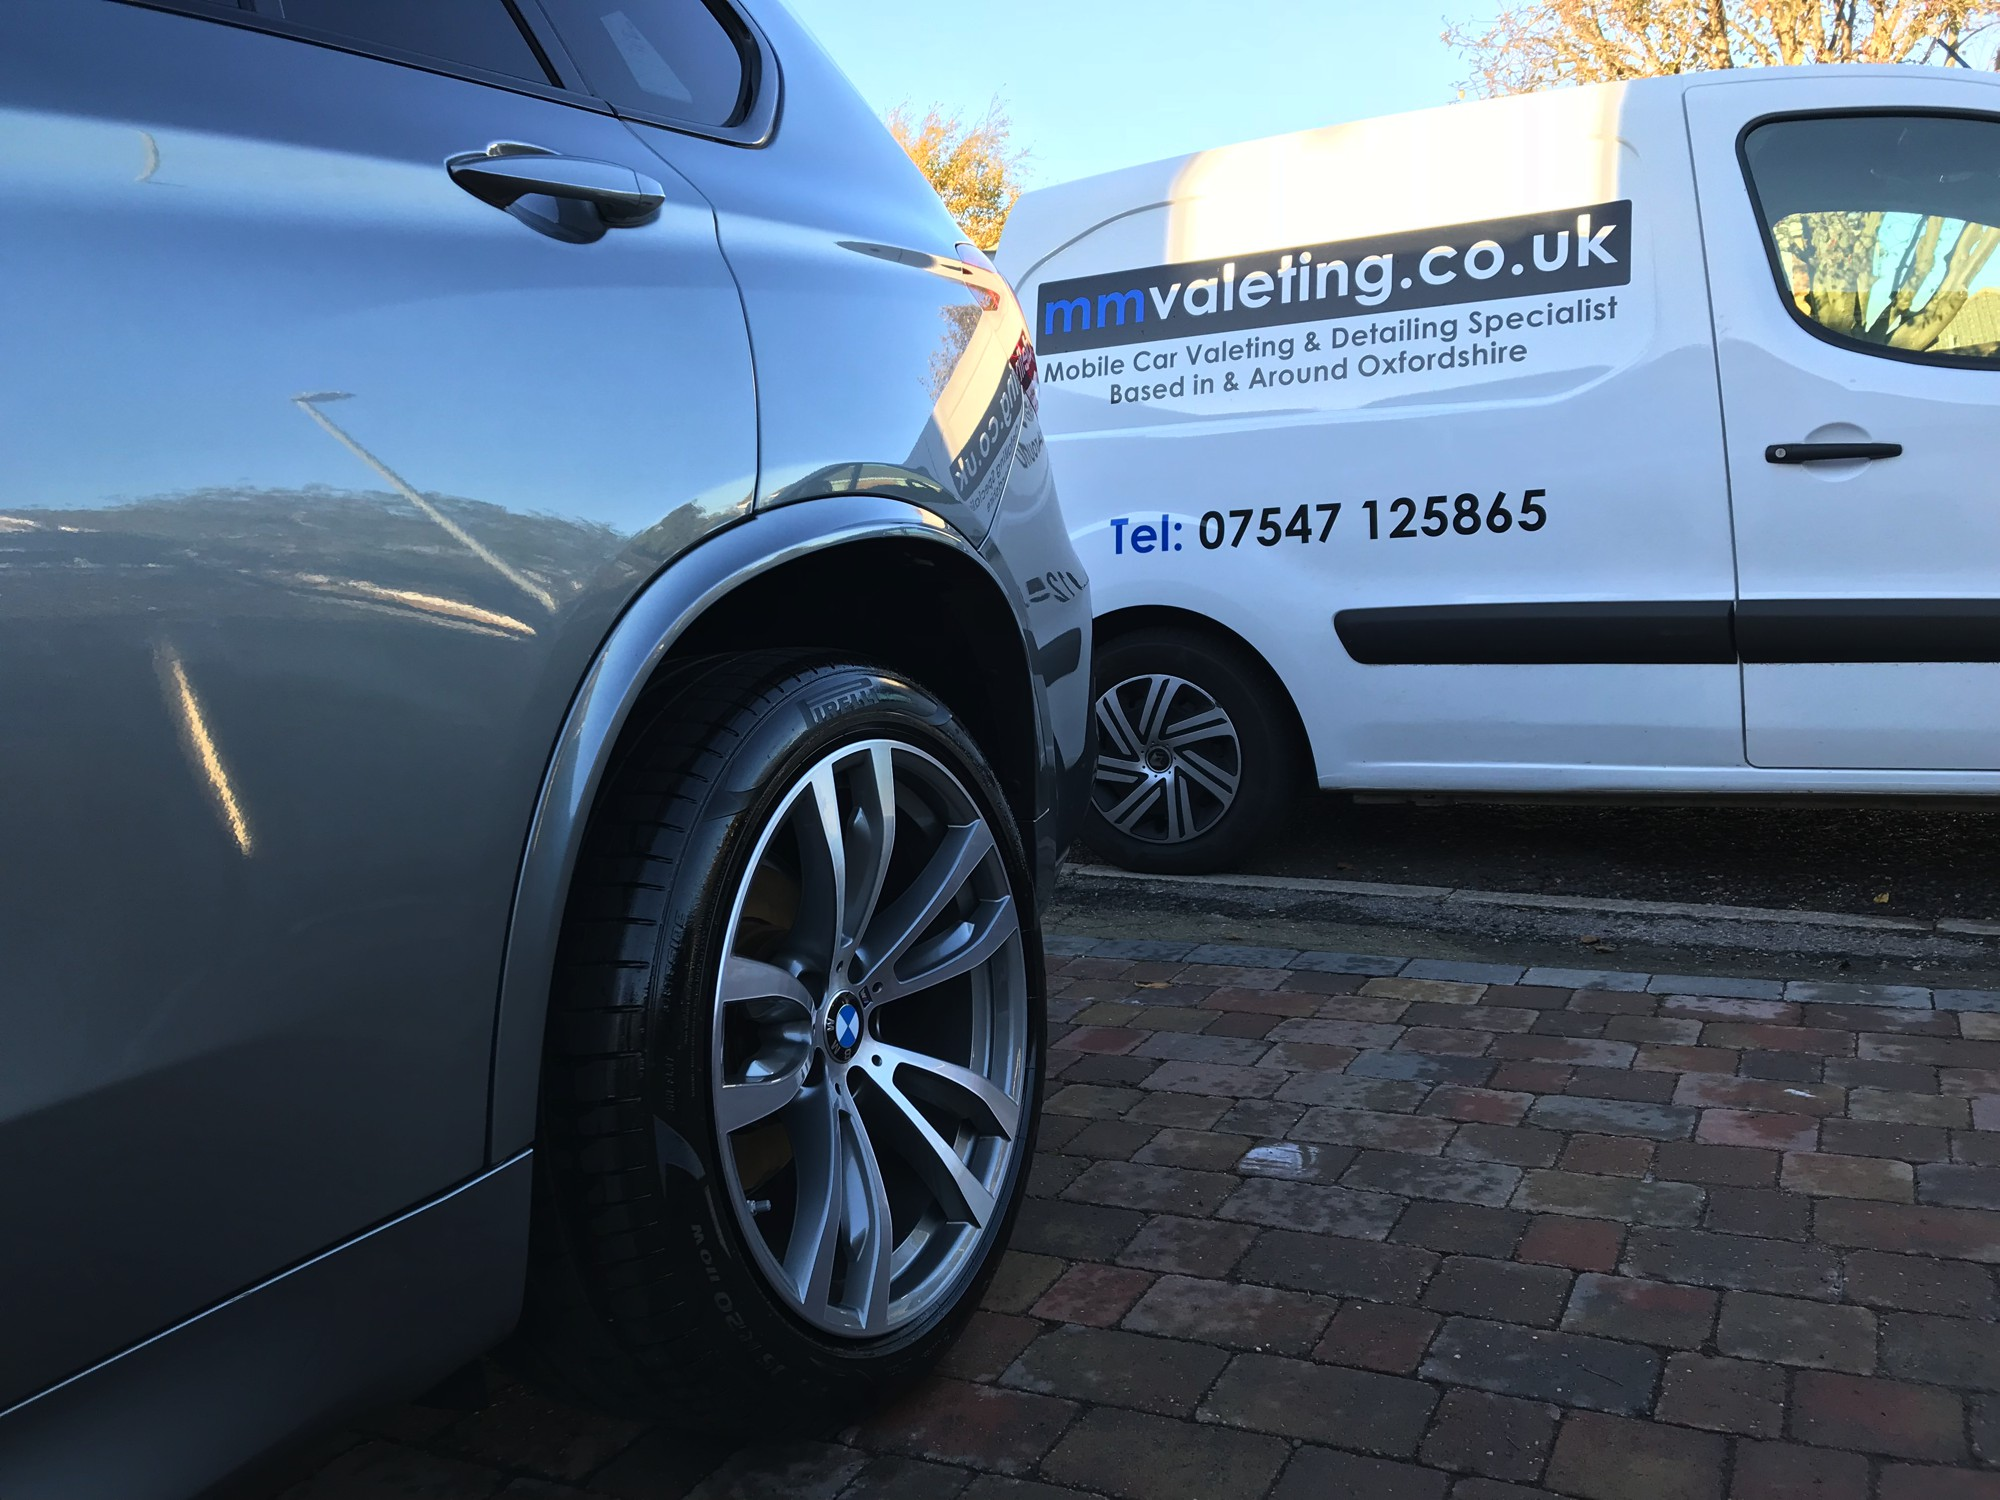 Protect the value of your car with a mini valet from mmvaleting - car detailing and valeting specialists in Oxfordshire and Buckinghamshire.